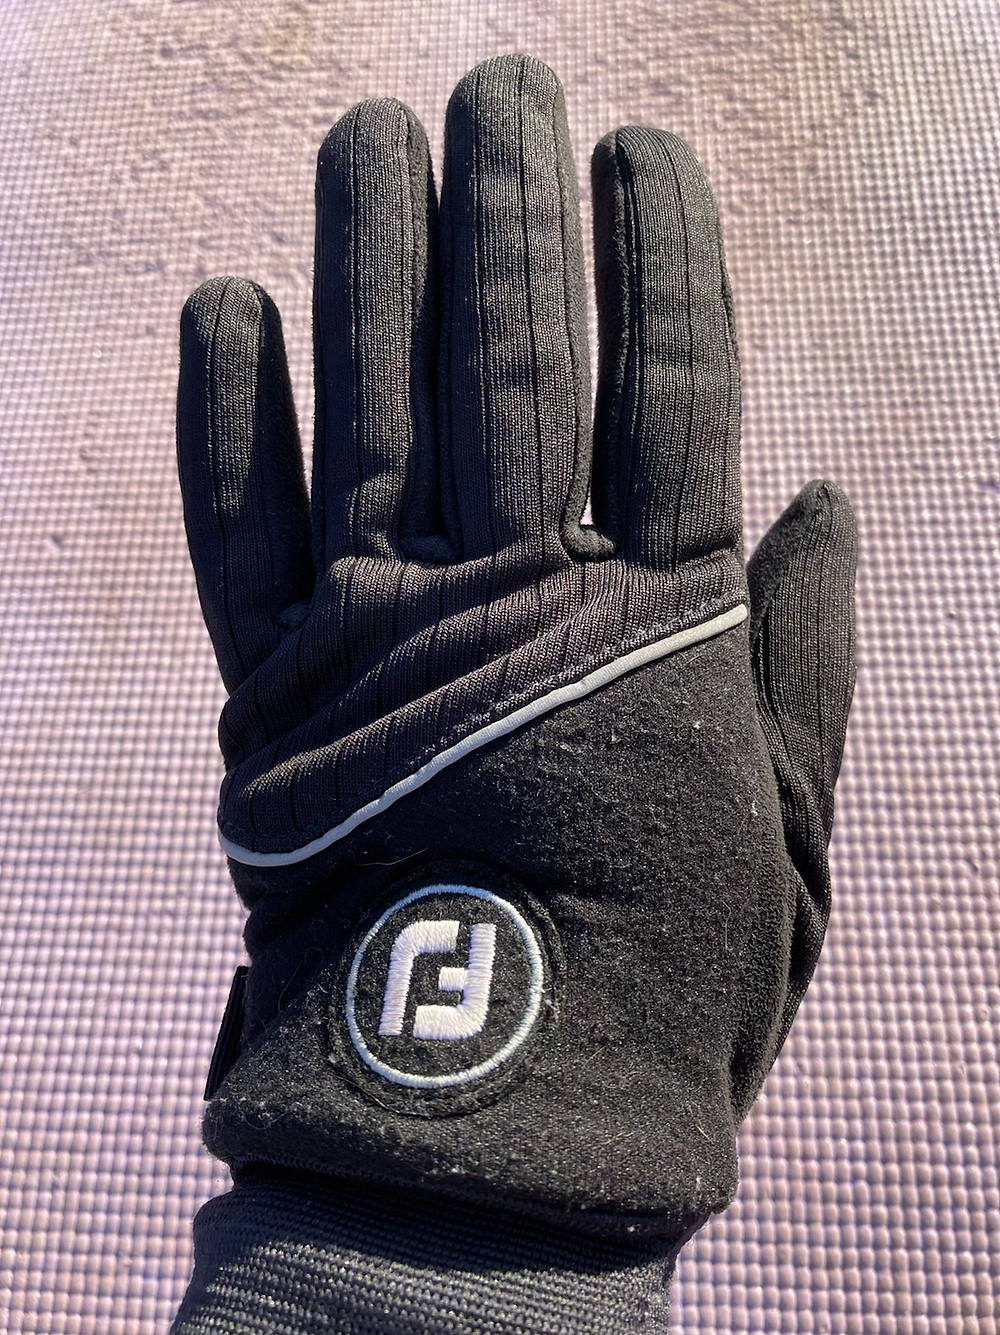 Outdoor Yoga - golf gloves are great to practice yoga outdoors in cold weather